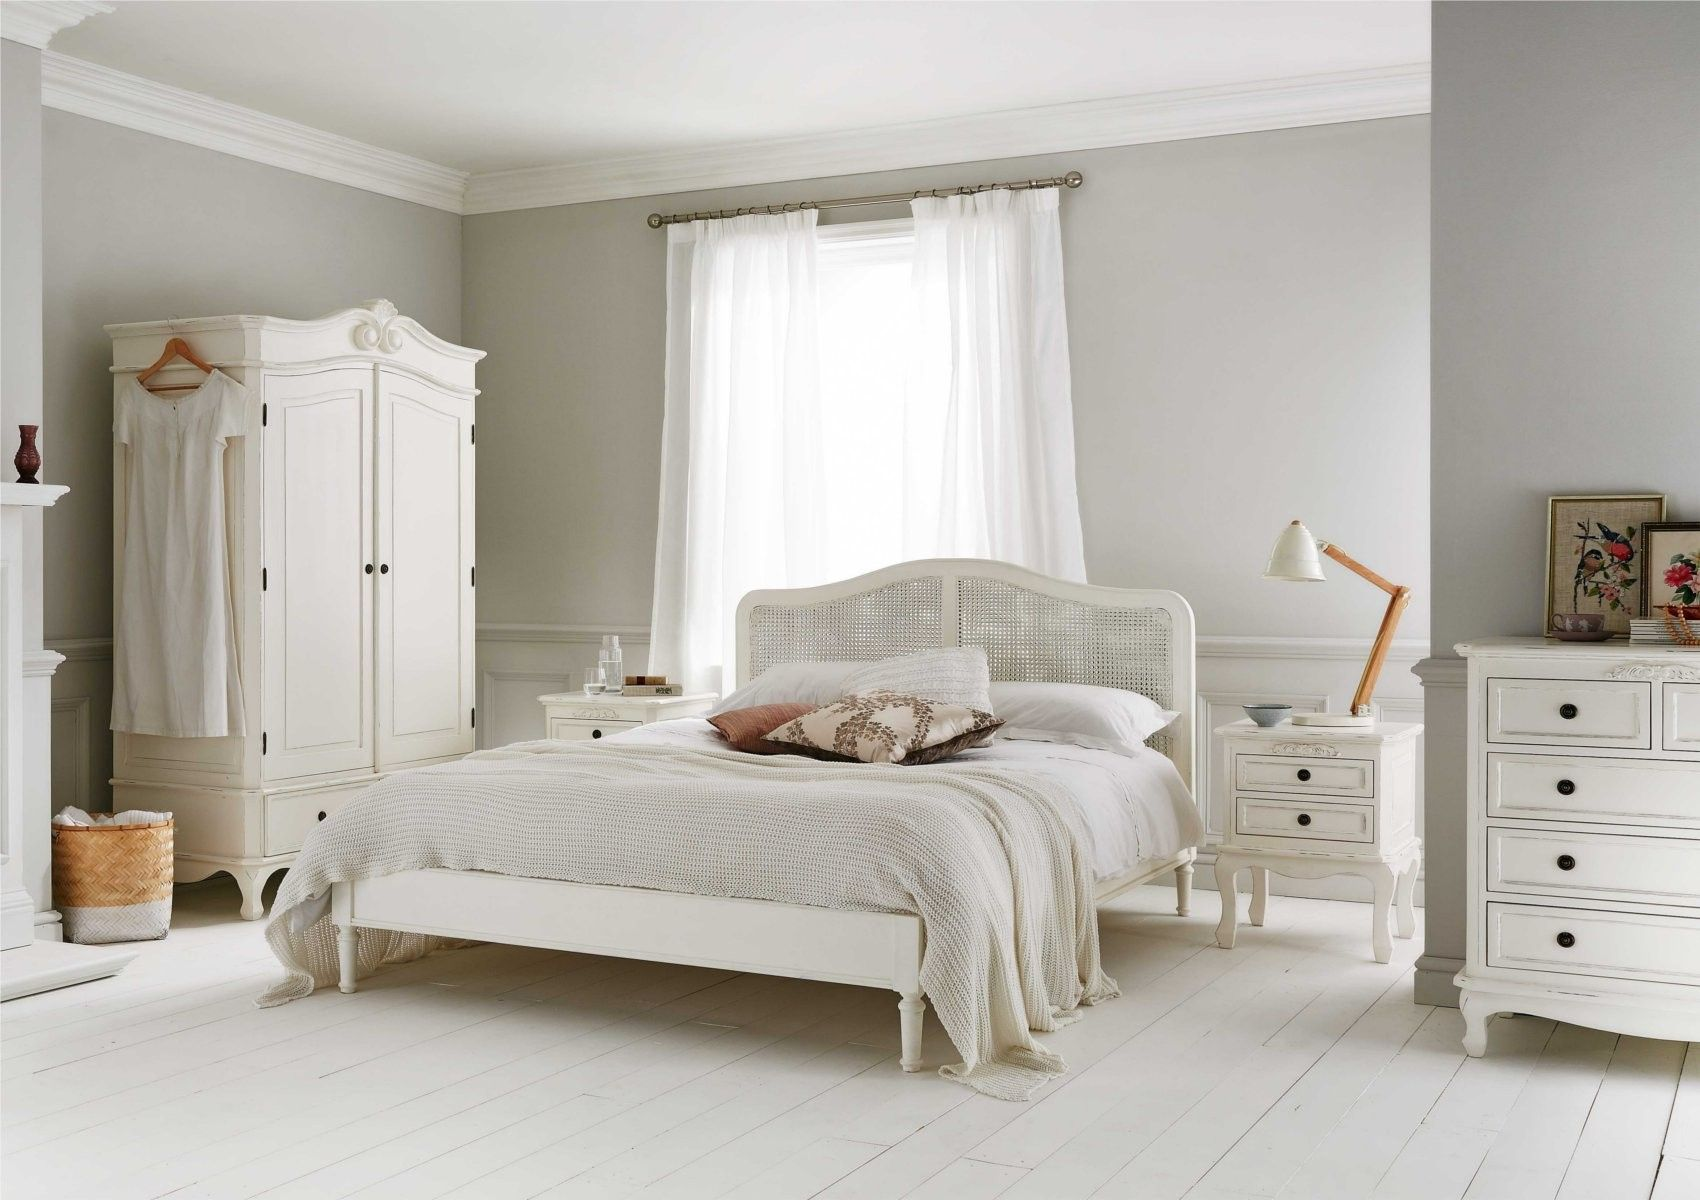 Liberty Rattan Wooden Bed Frame White Wooden Bed Rattan Bed